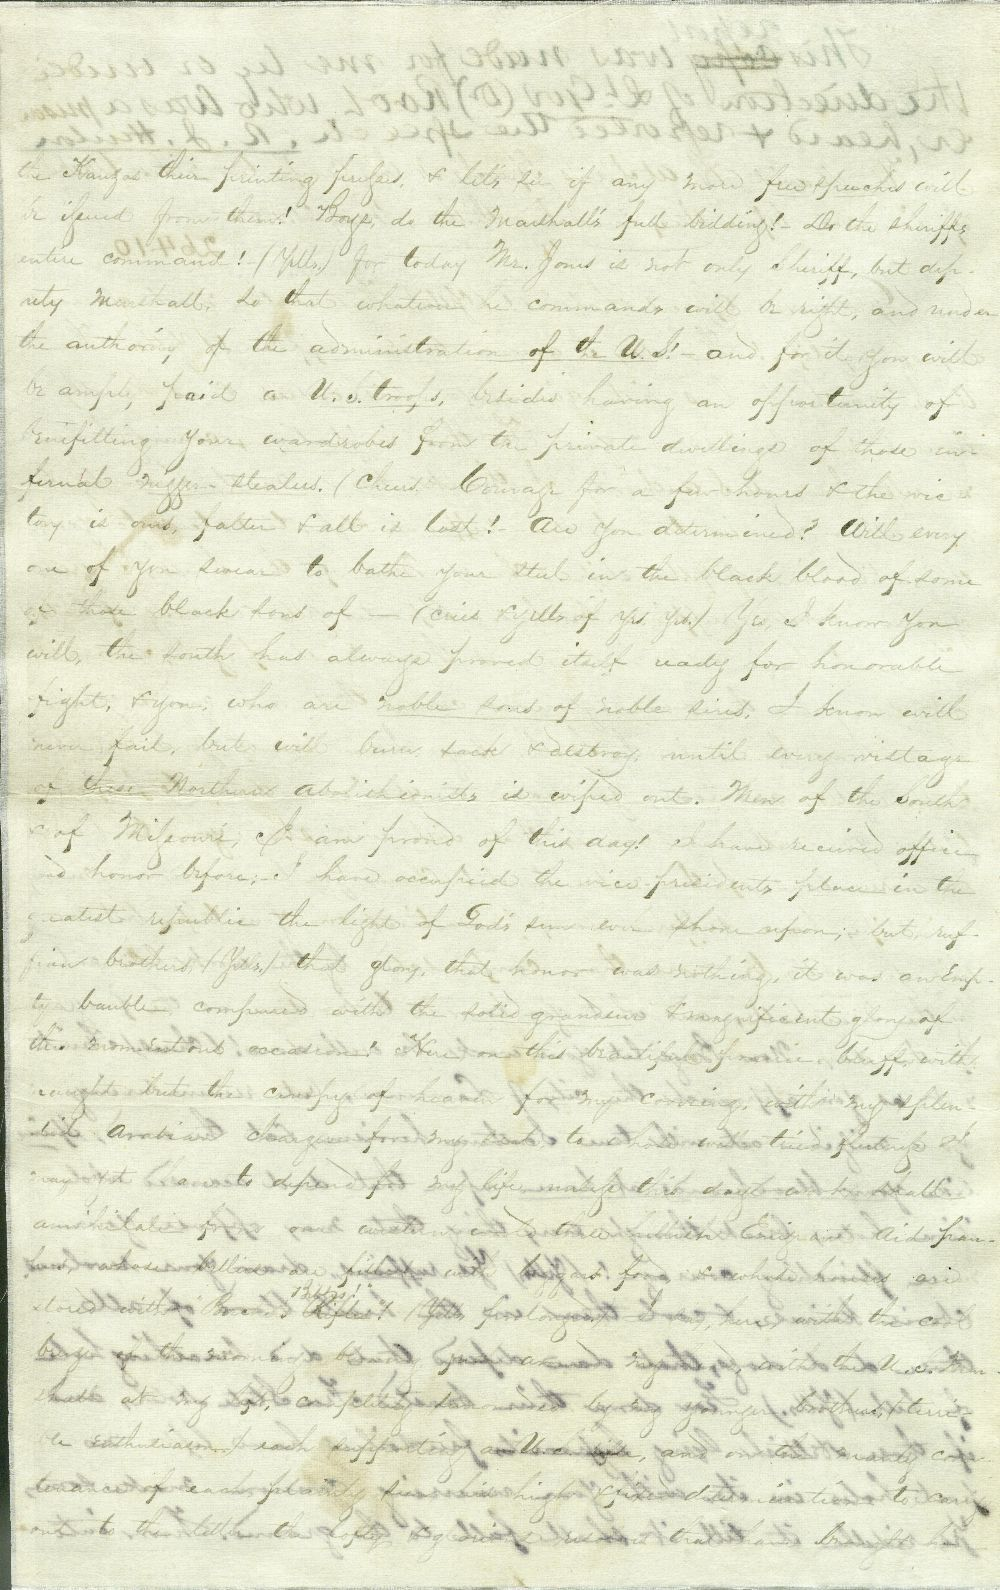 Copy of David R. Atchison speech to pro-slavery forces - 1